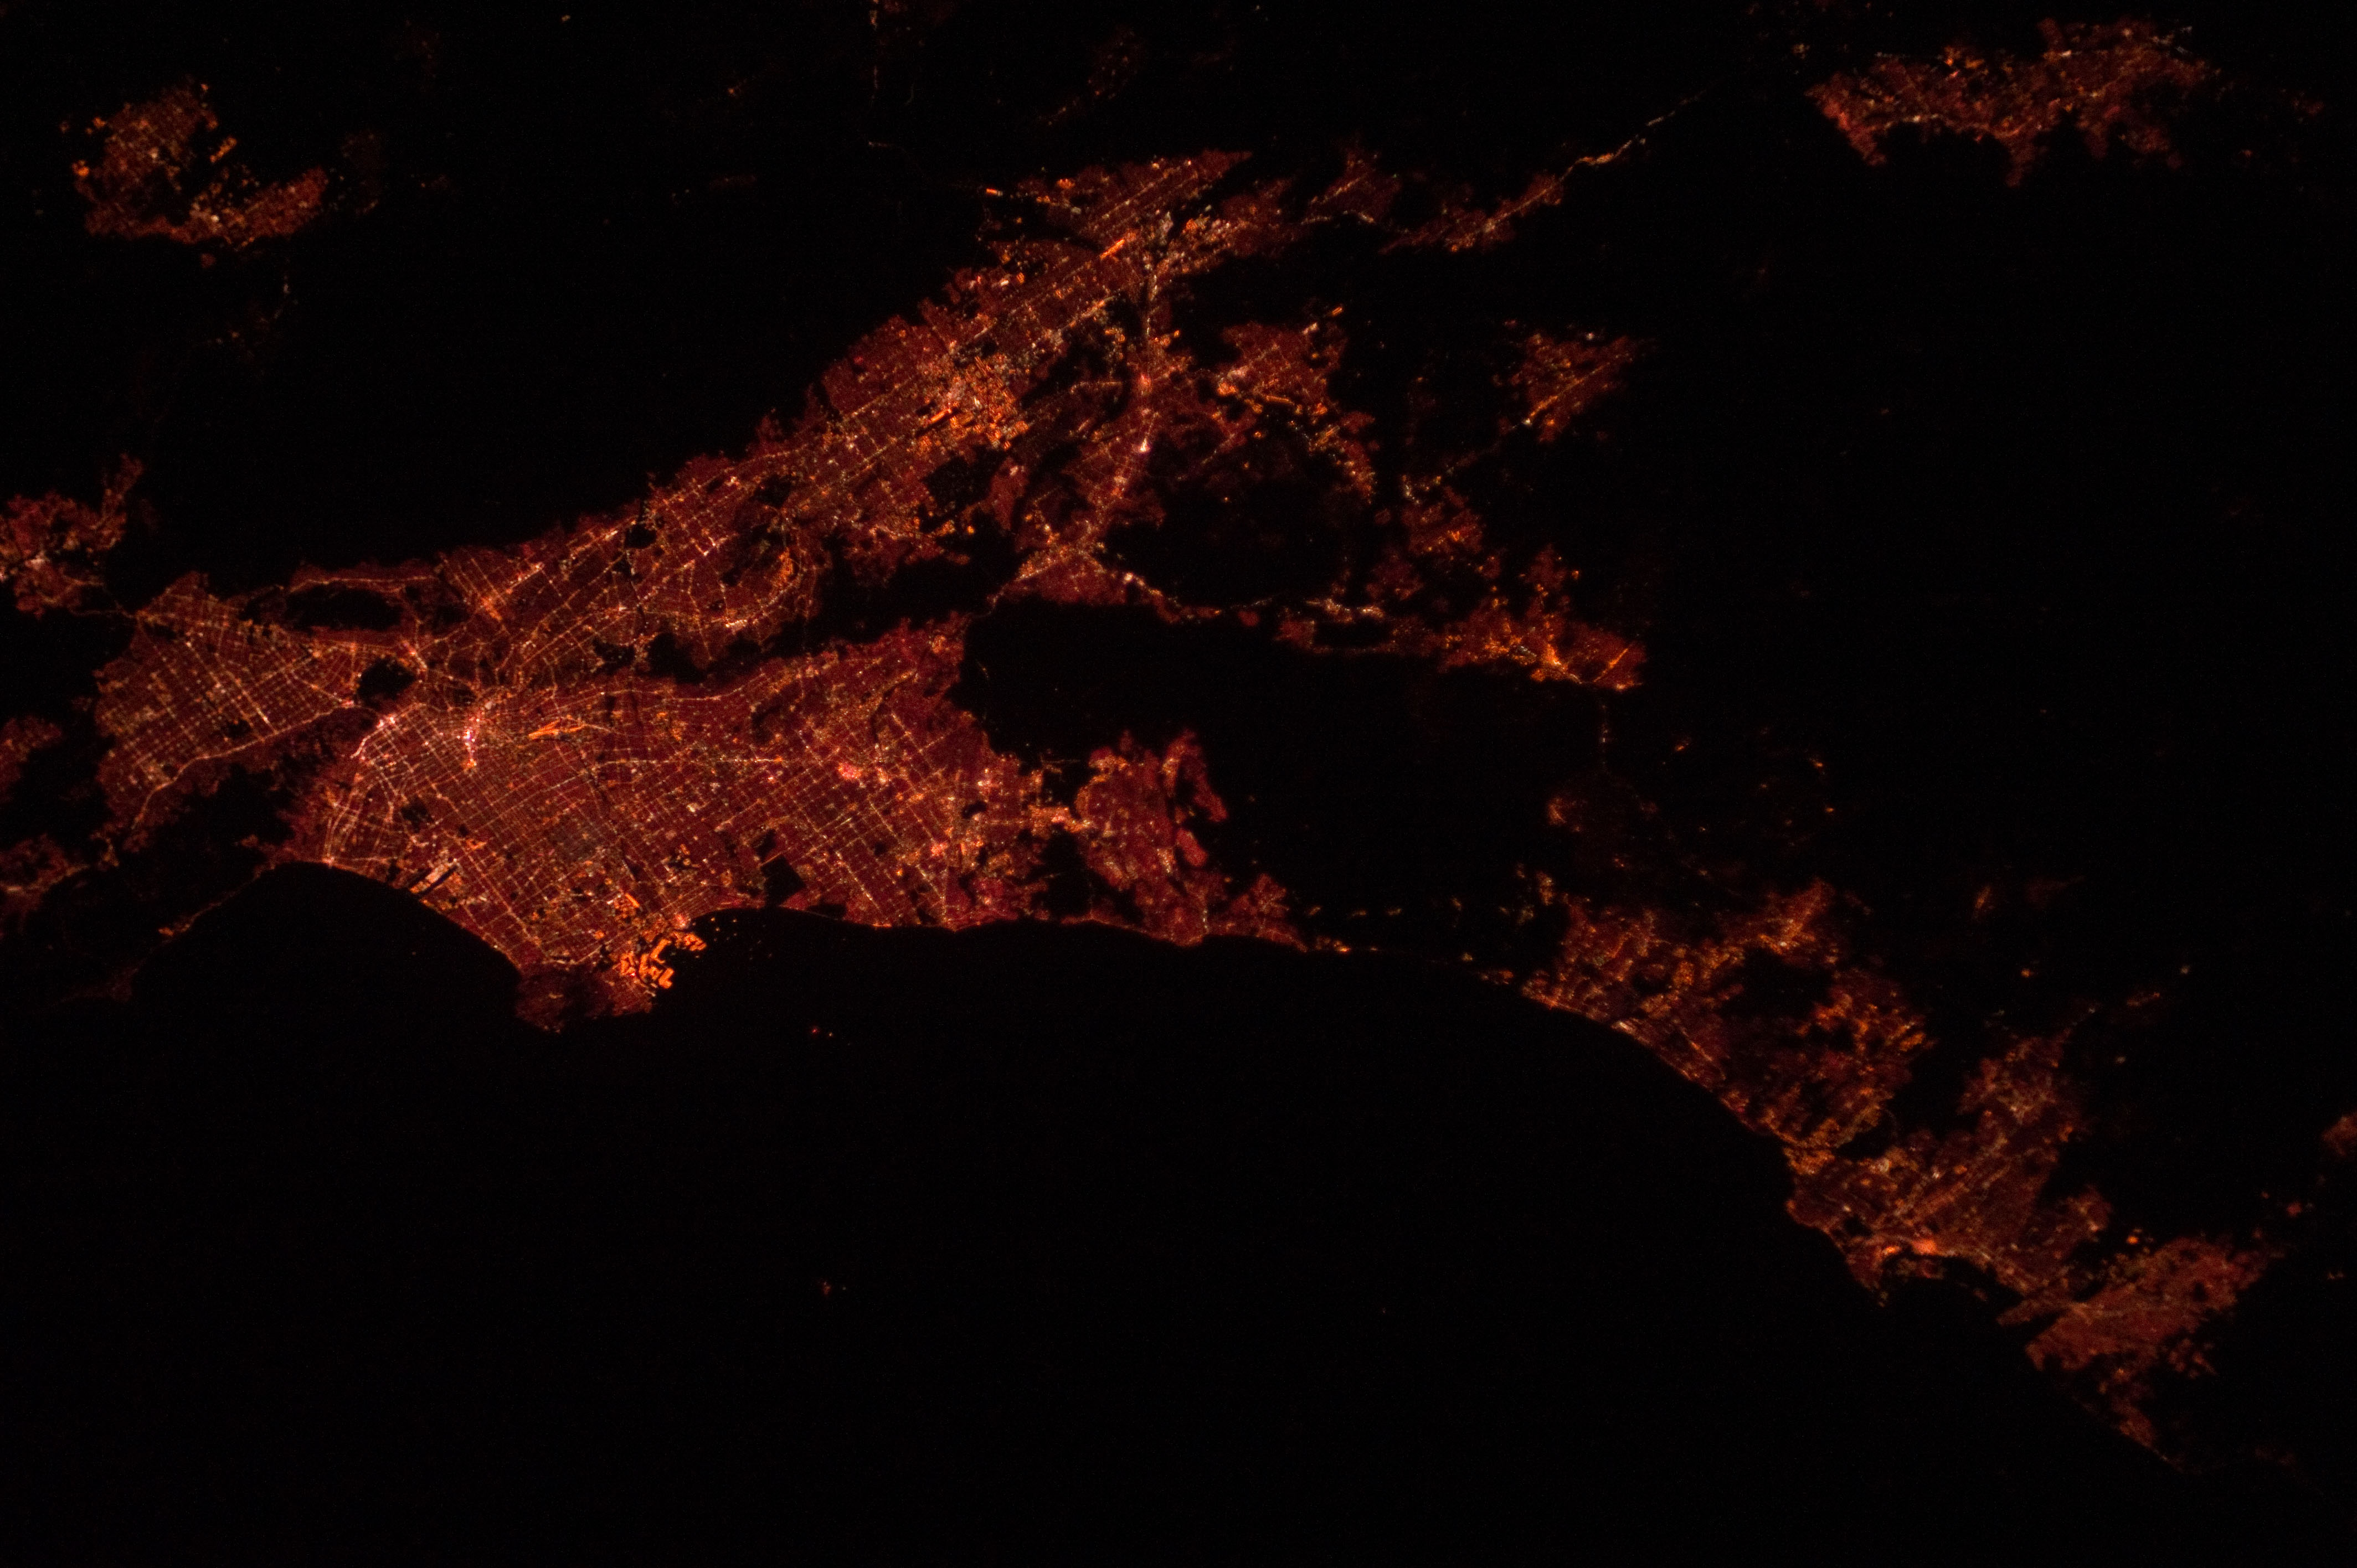 Los Angeles Area at Night (NASA, International Space Station, 12 ...